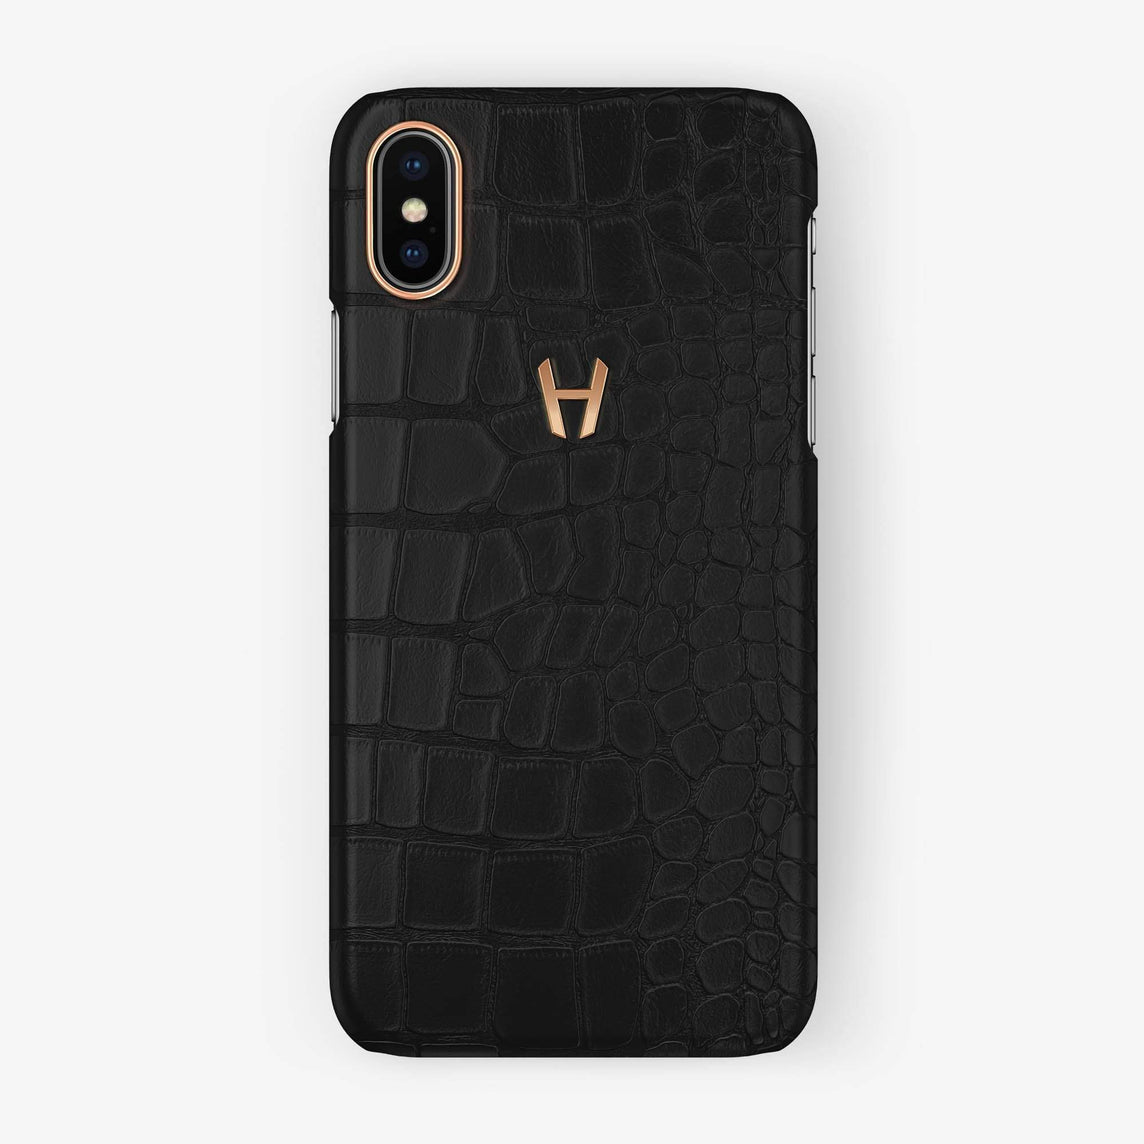 Alligator [iPhone Case] [model:iphone-xsmax-case] [colour:phantom-black] [finishing:rose-gold] - Hadoro